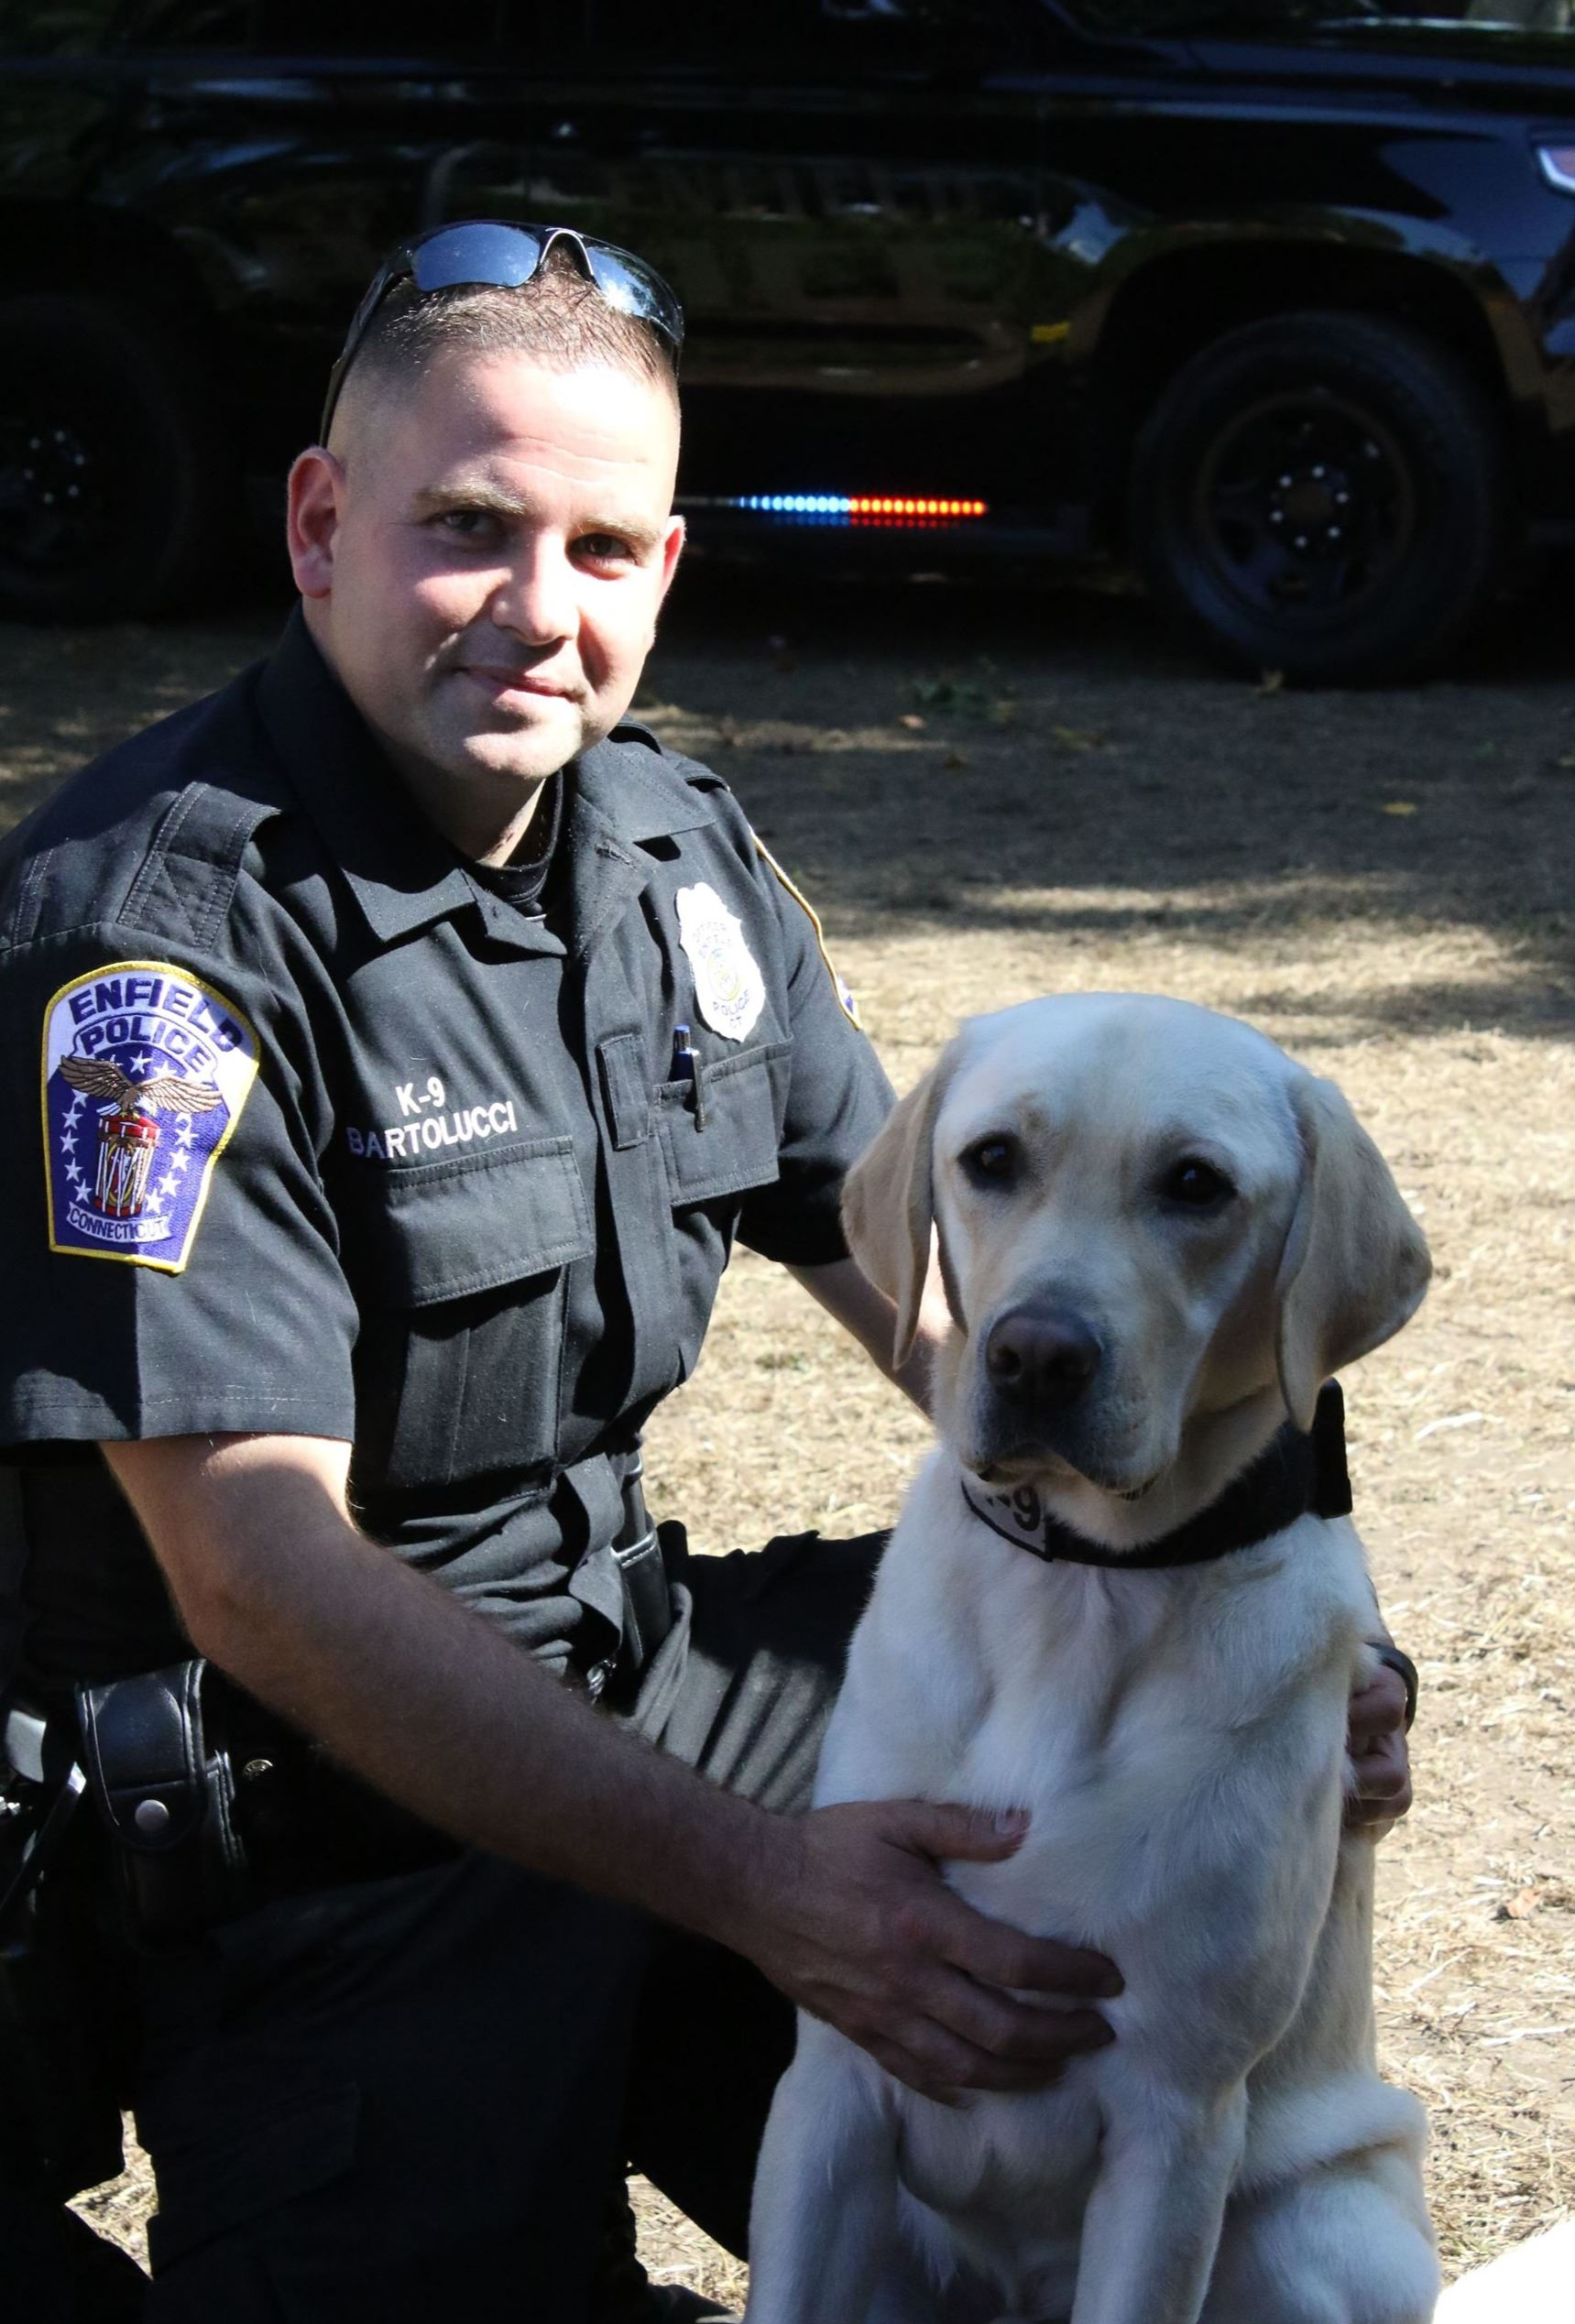 Officer Bartolucci and K9 Britford